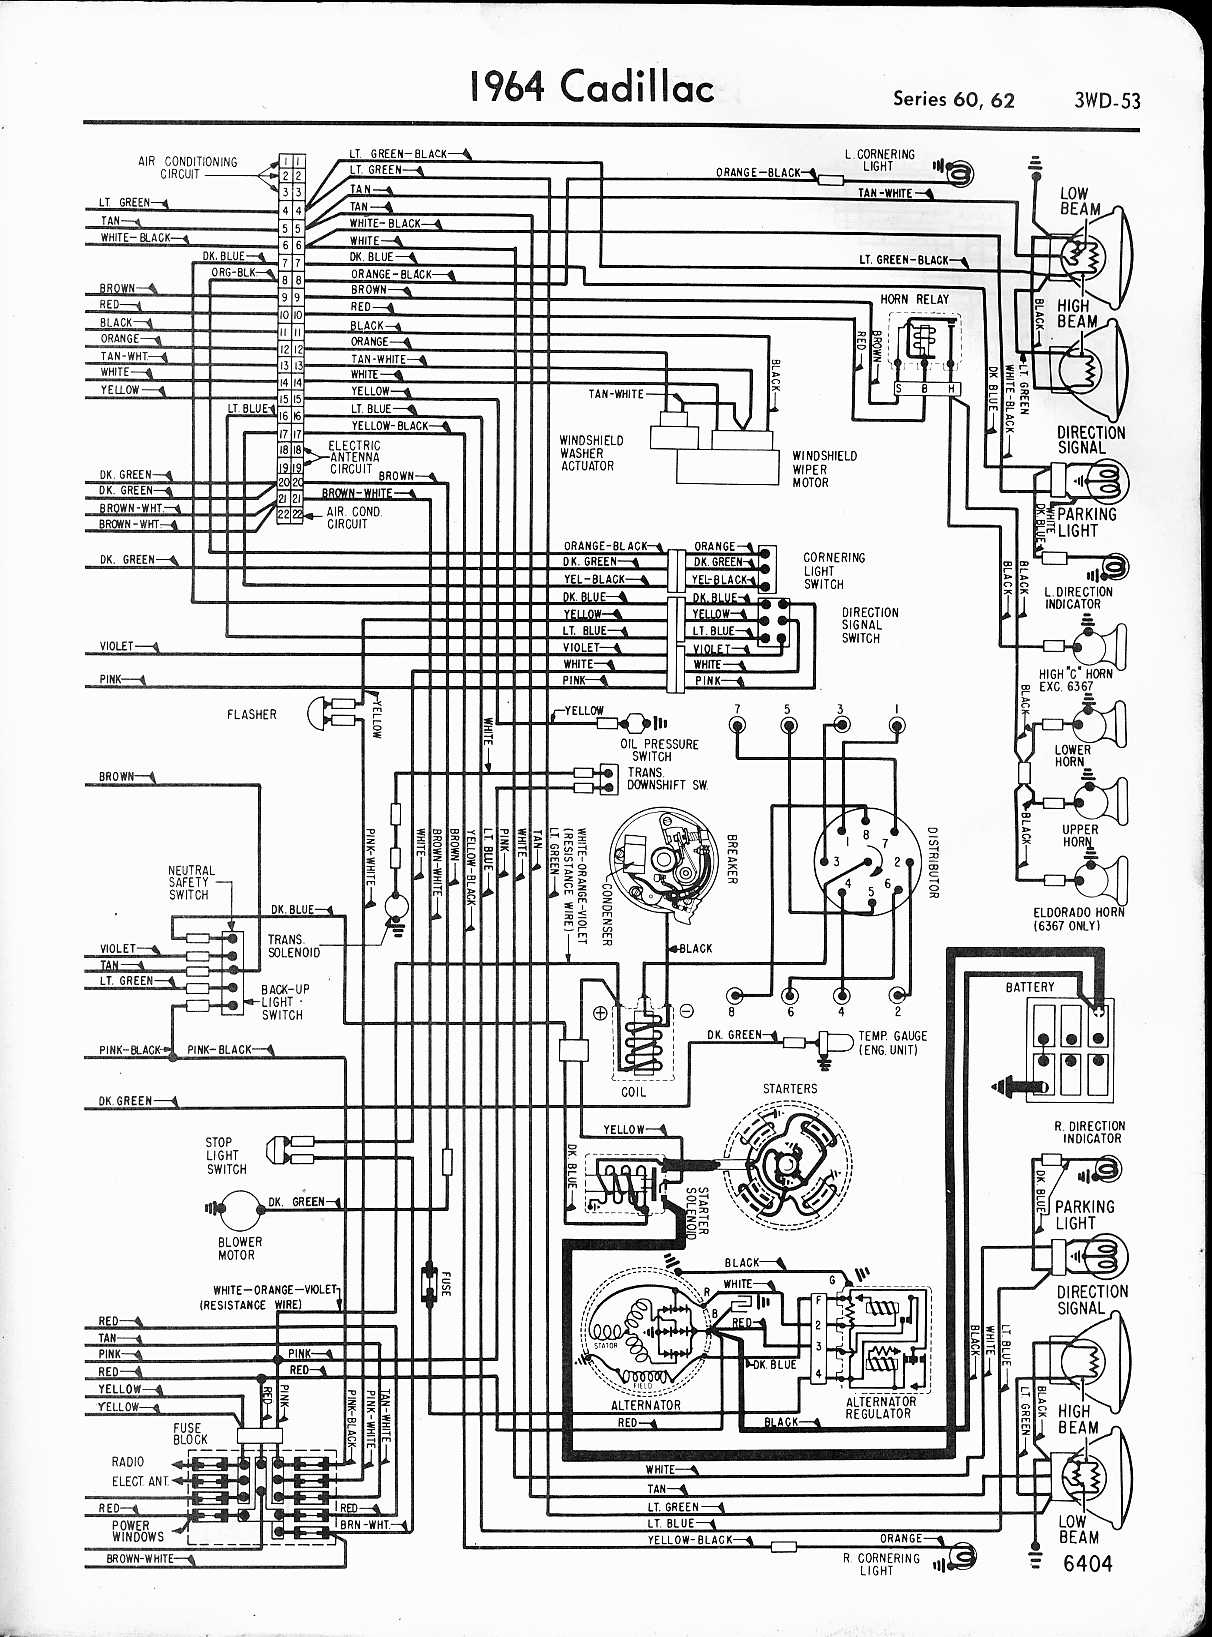 1955 cadillac series 62 wiring diagram example electrical wiring rh olkha co 1965 Cadillac Series 62 1958 Cadillac Series 62